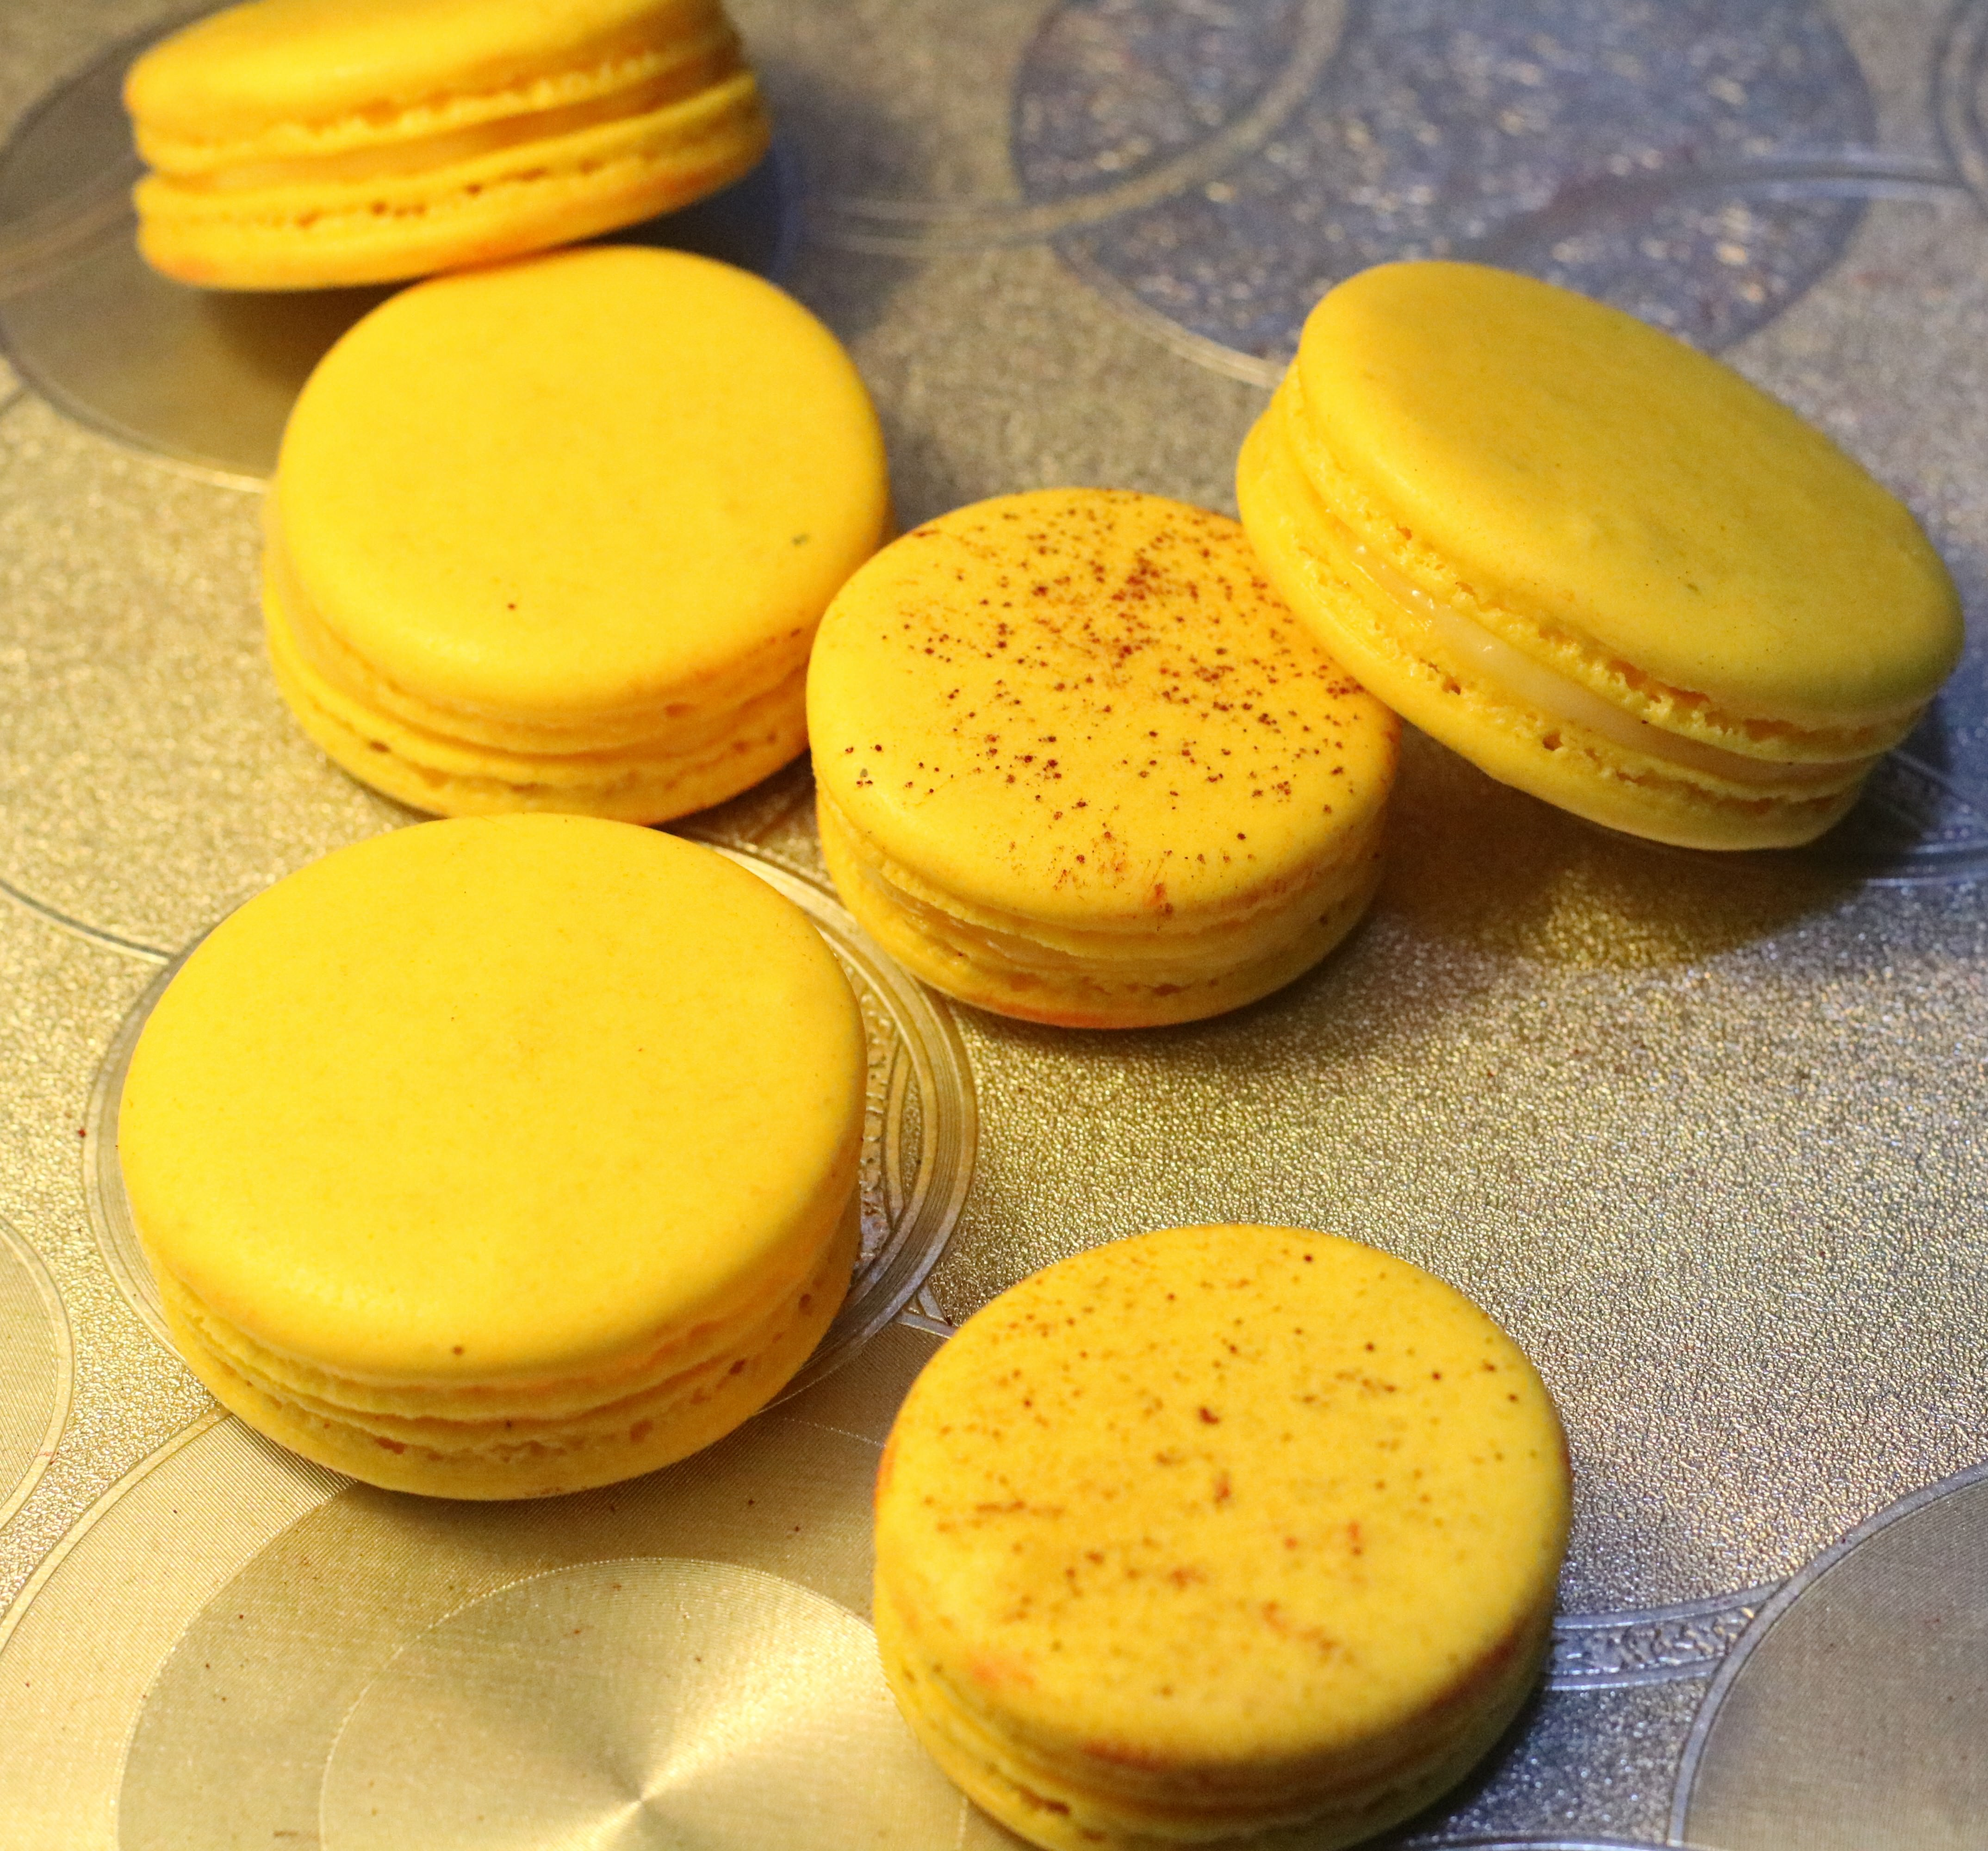 A complete Guide To A Perfect French Macaron is a post which is going to help you create the perfect macaron and answer all your macaron related queries